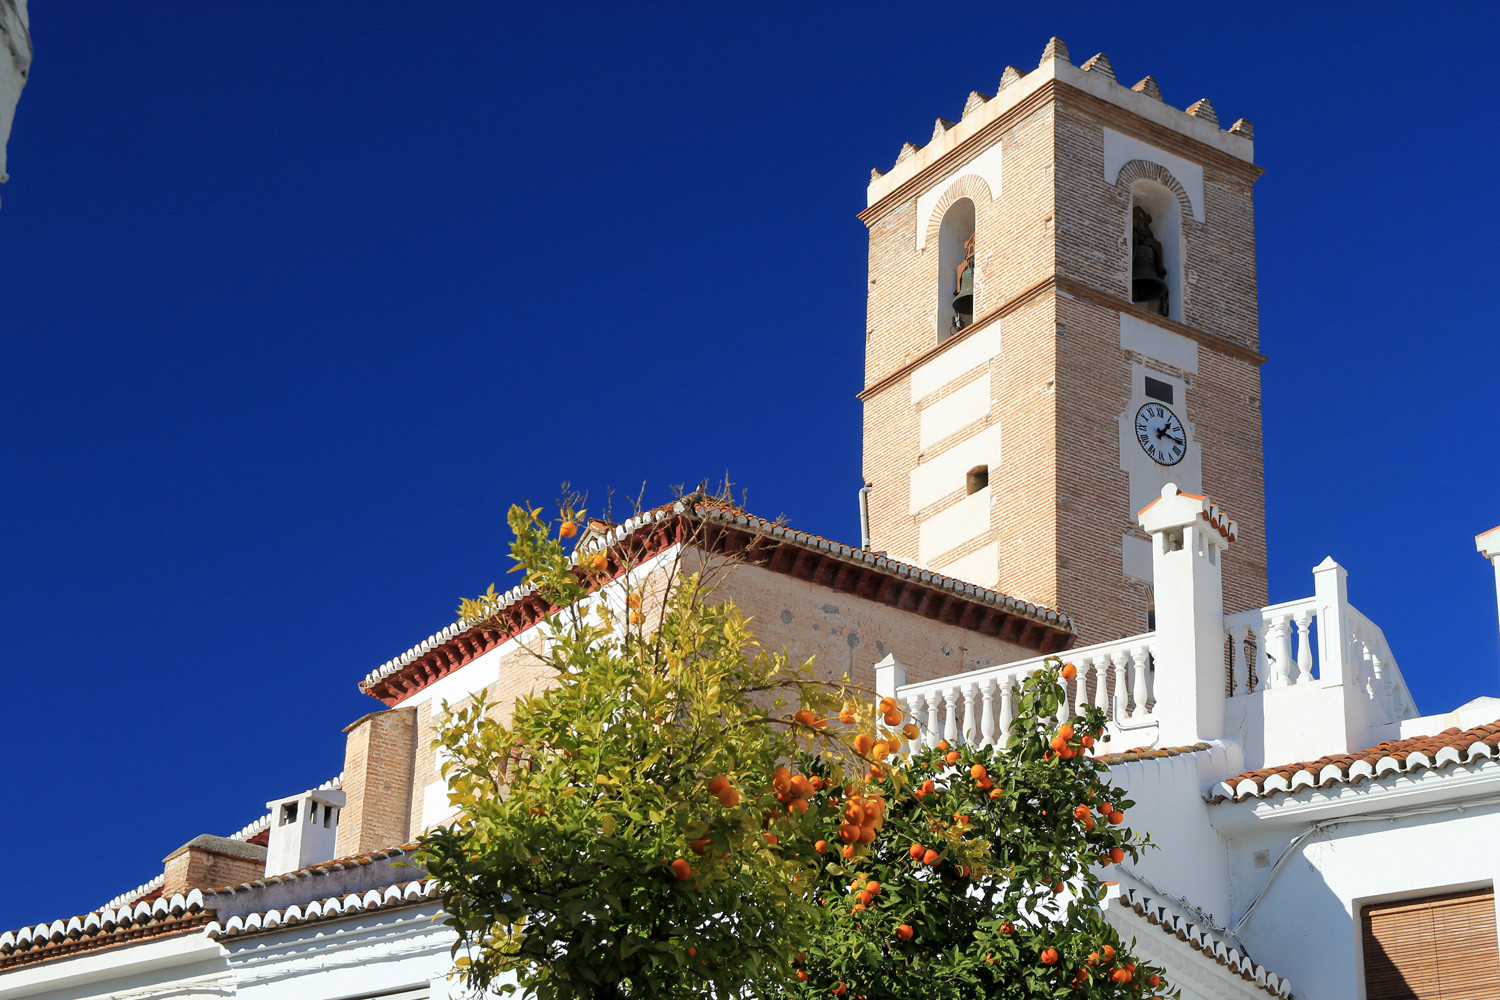 The Church of Salobreña